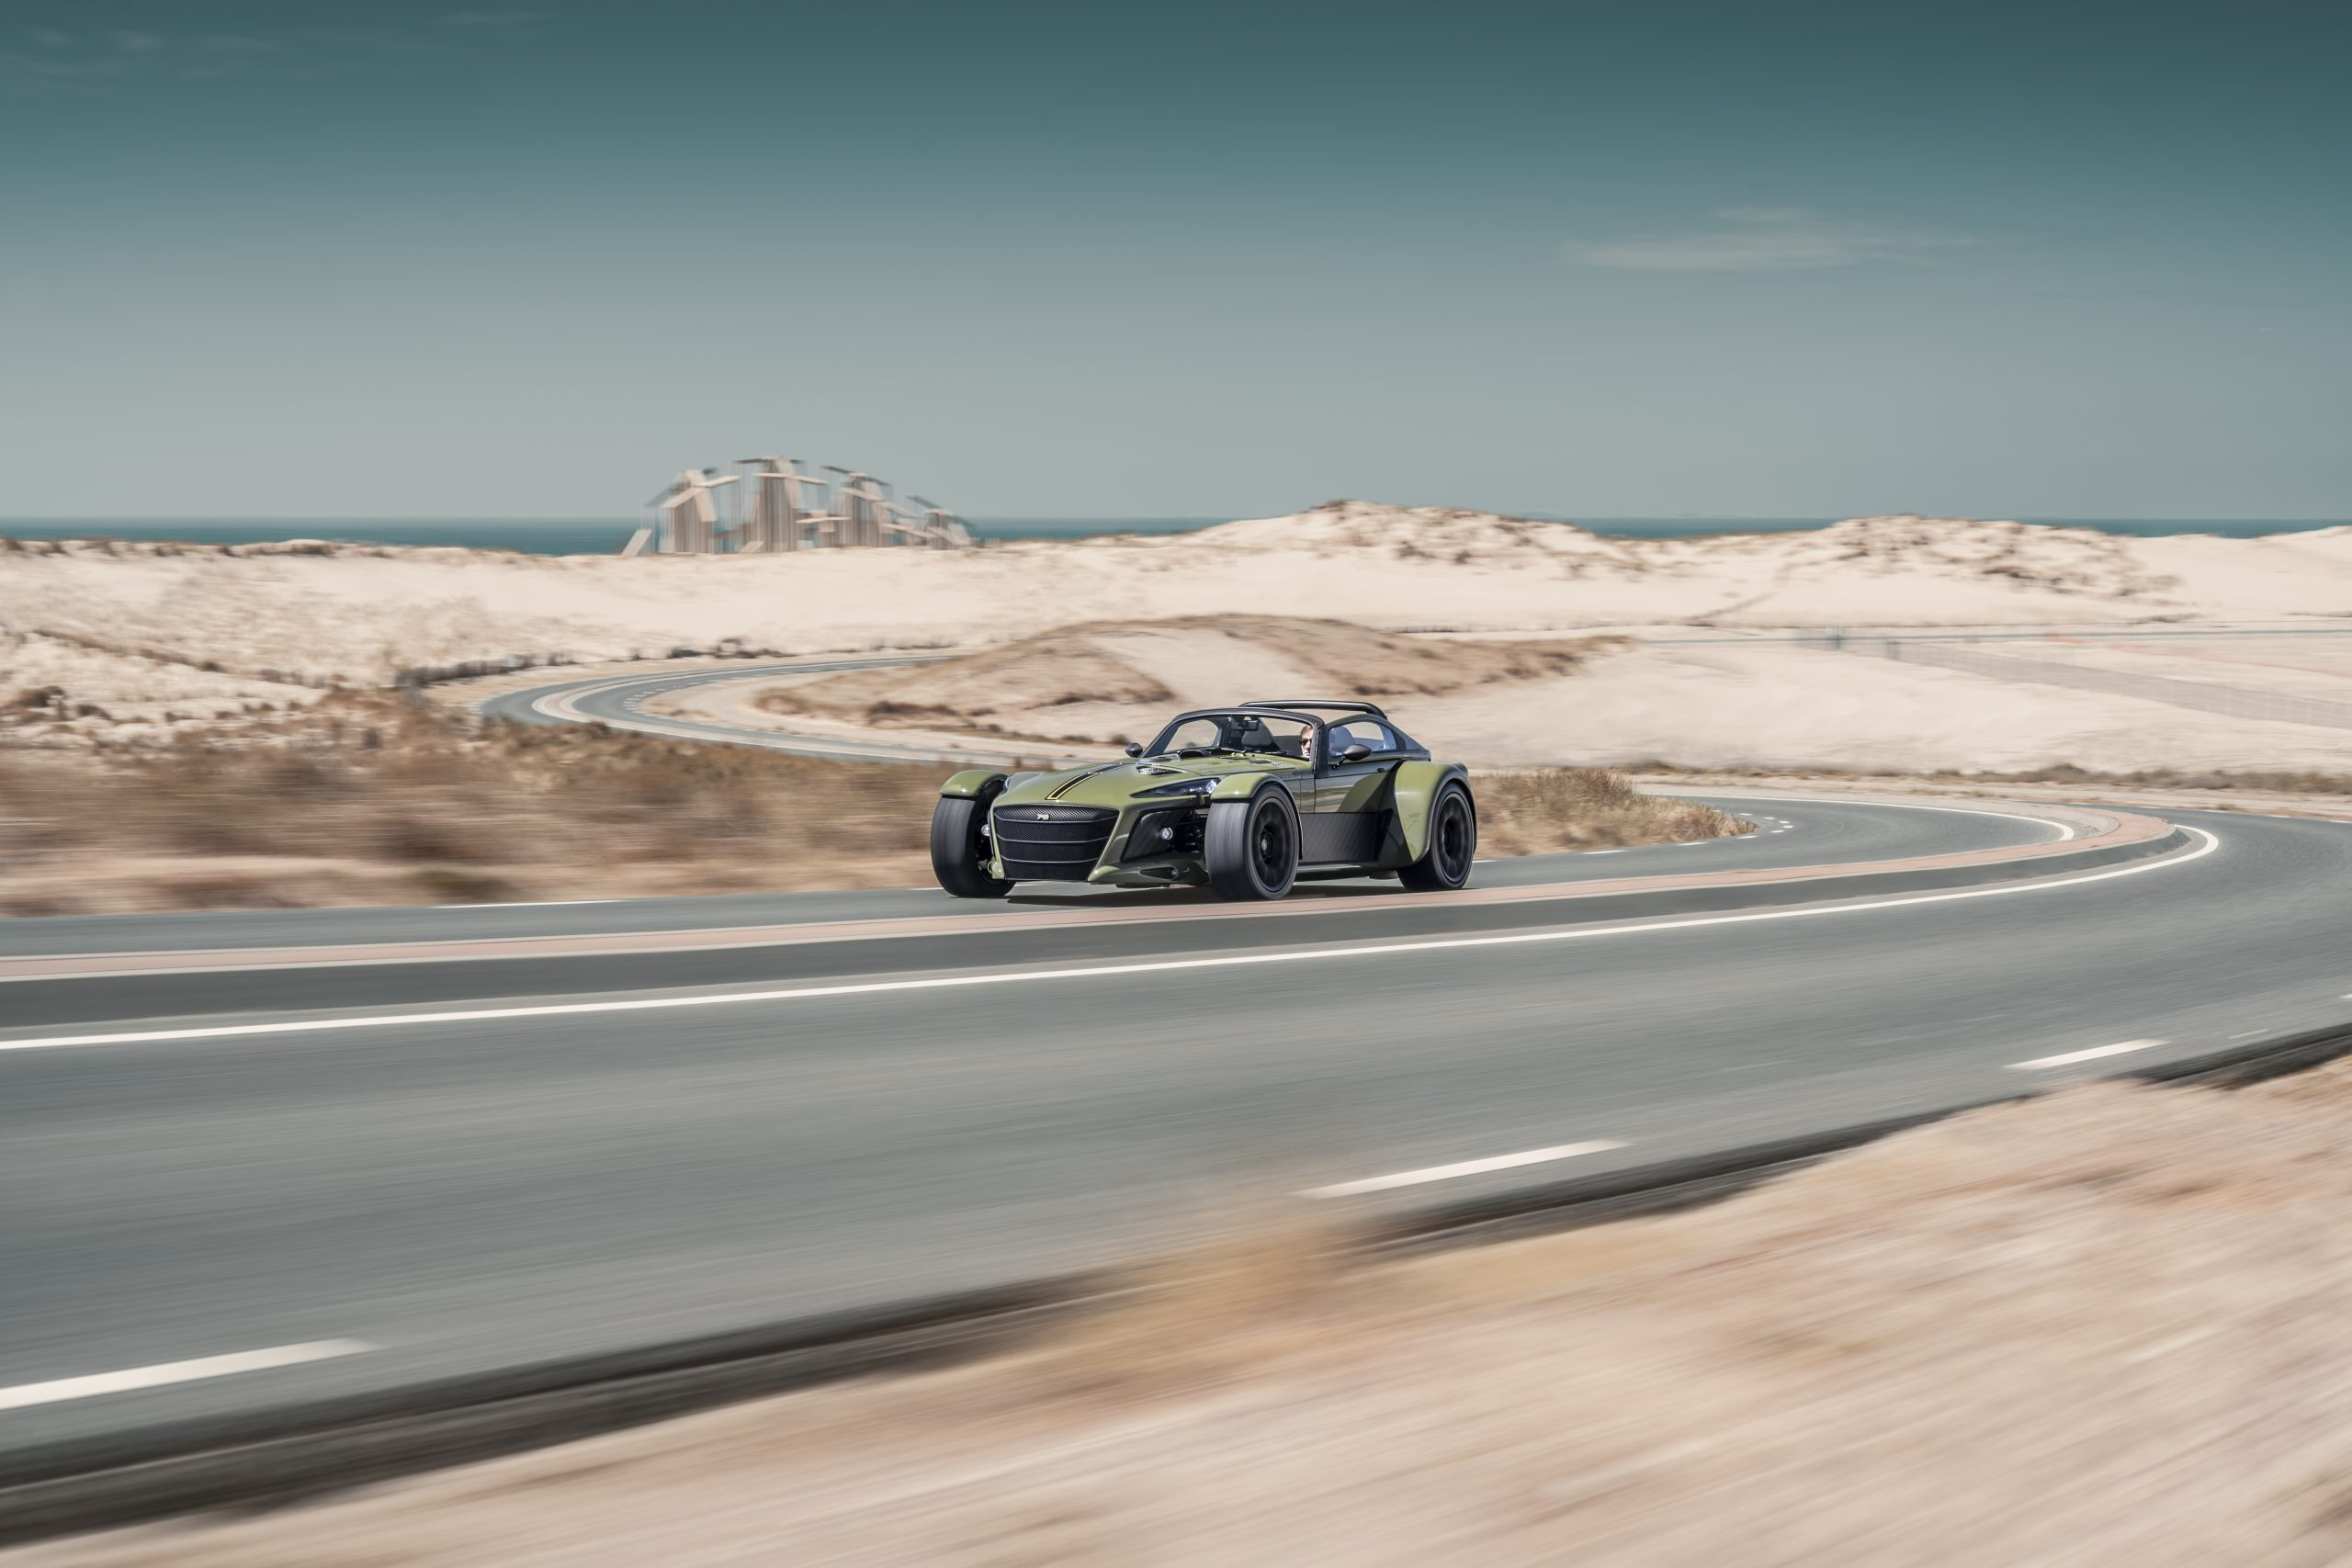 donkervoort-d8gto-jd70 action